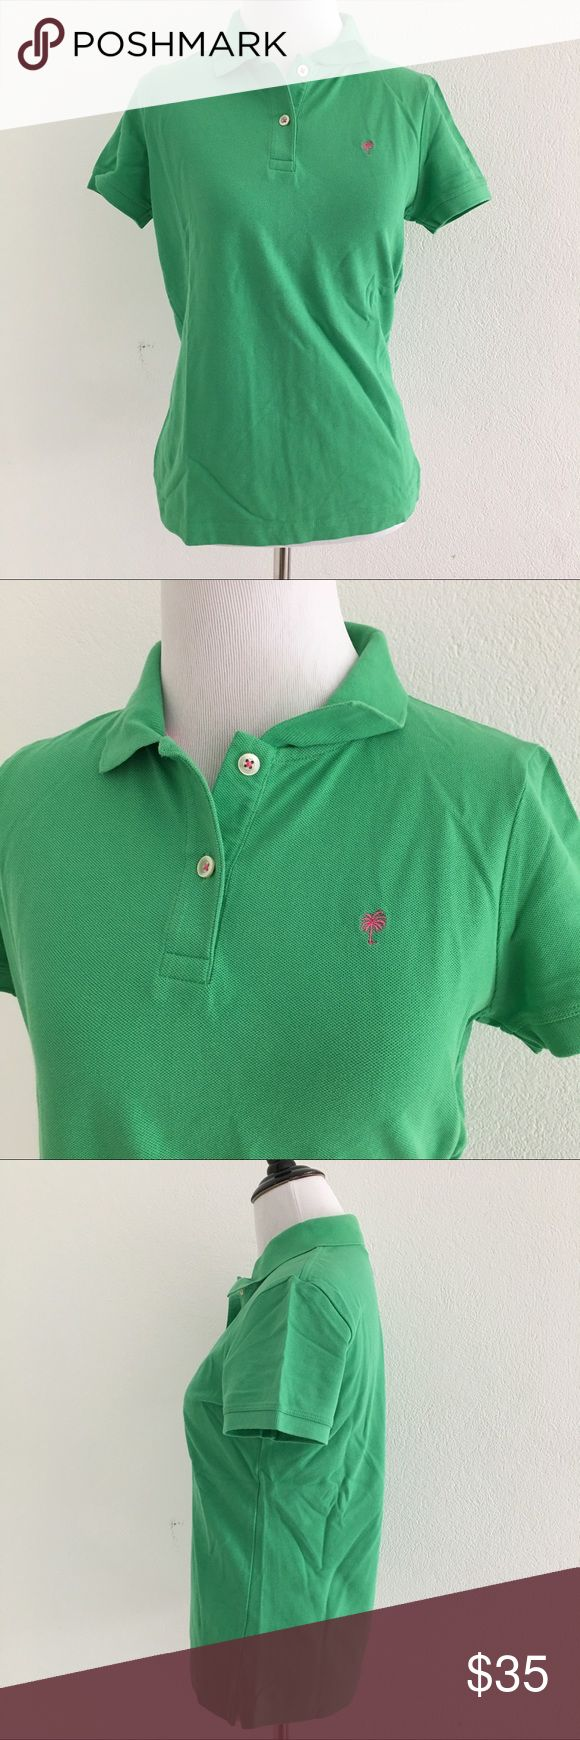 """Lilly Pulitzer Green Polo Shirt Size M Preowned authentic Lilly Pulitzer Green Polo Shirt Size M. Armpit to armpit is 17.5"""" inches. Collar to hem is 22"""" inches shoulder to cuff is 6"""" inches. Please look at pictures for better reference. Happy shopping! Lilly Pulitzer Tops"""